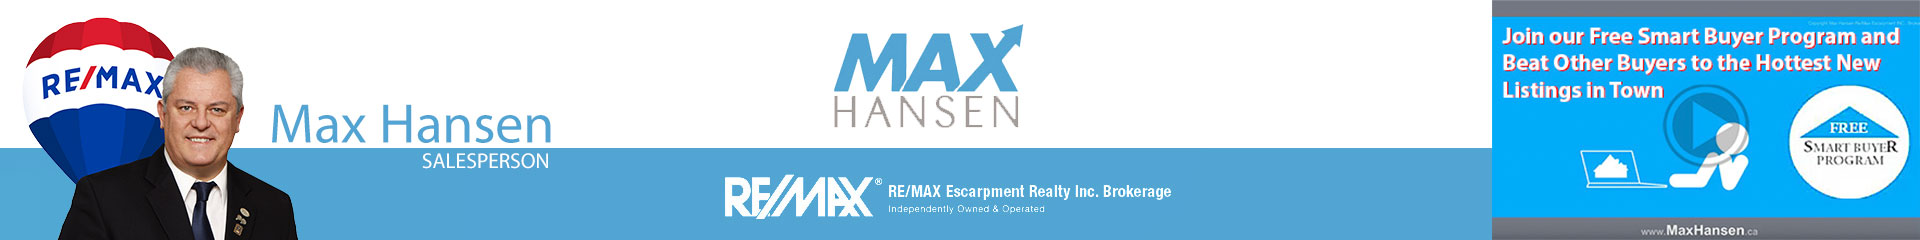 Homes For Sale | Max Hansen Real Estate